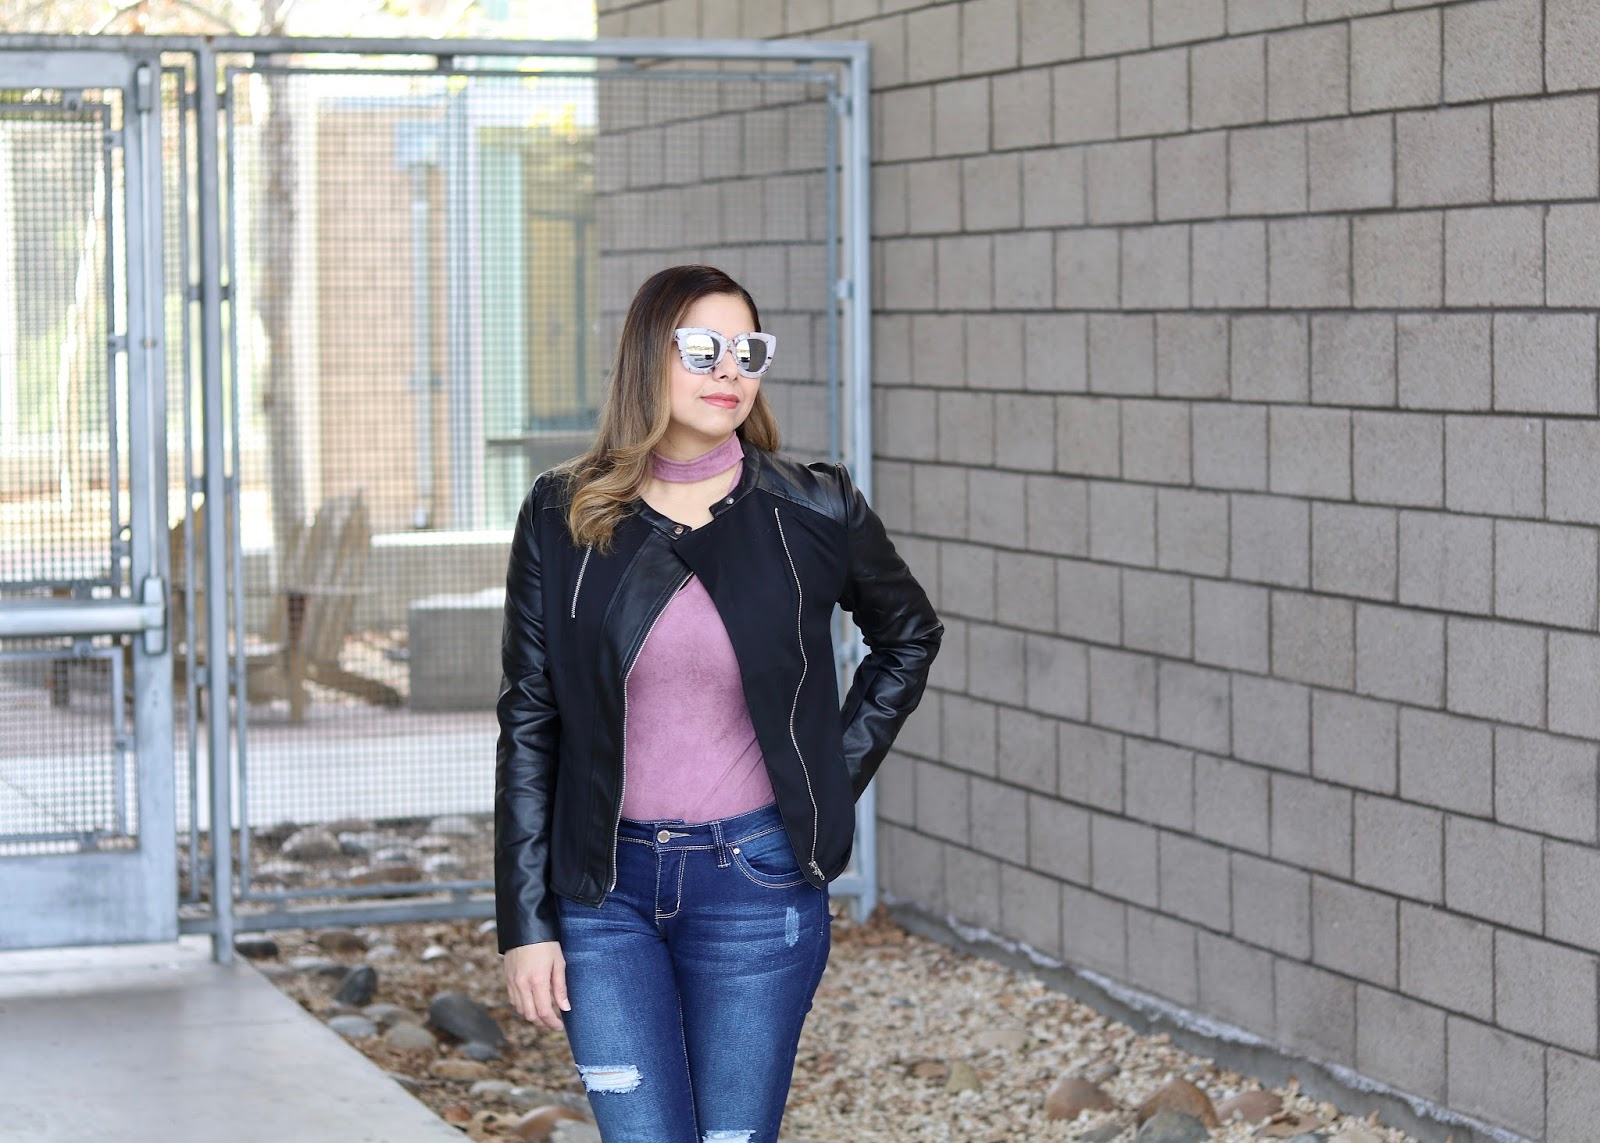 quay blogger, San Diego lifestyle blogger, how to wear mirrored sunglasses